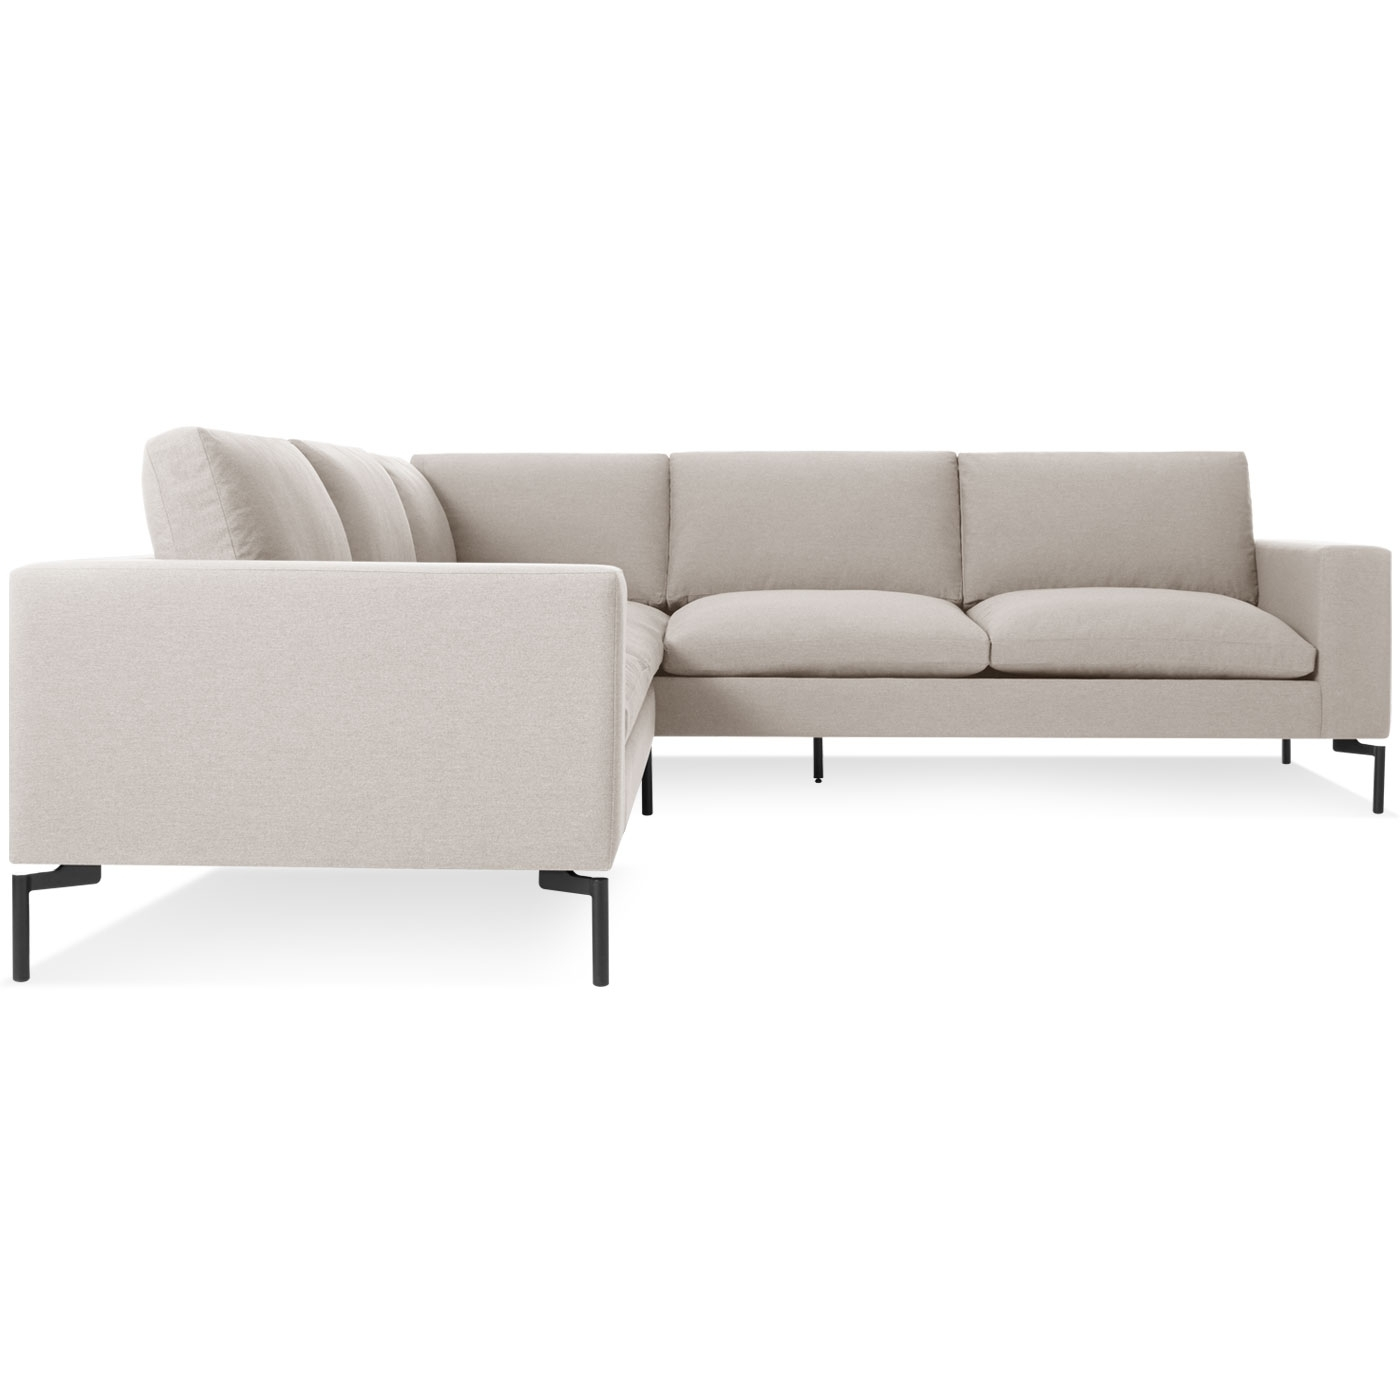 Small Sectional Sofas Within Widely Used New Standard Small Sectional Sofa – Modern Sofas (View 7 of 20)